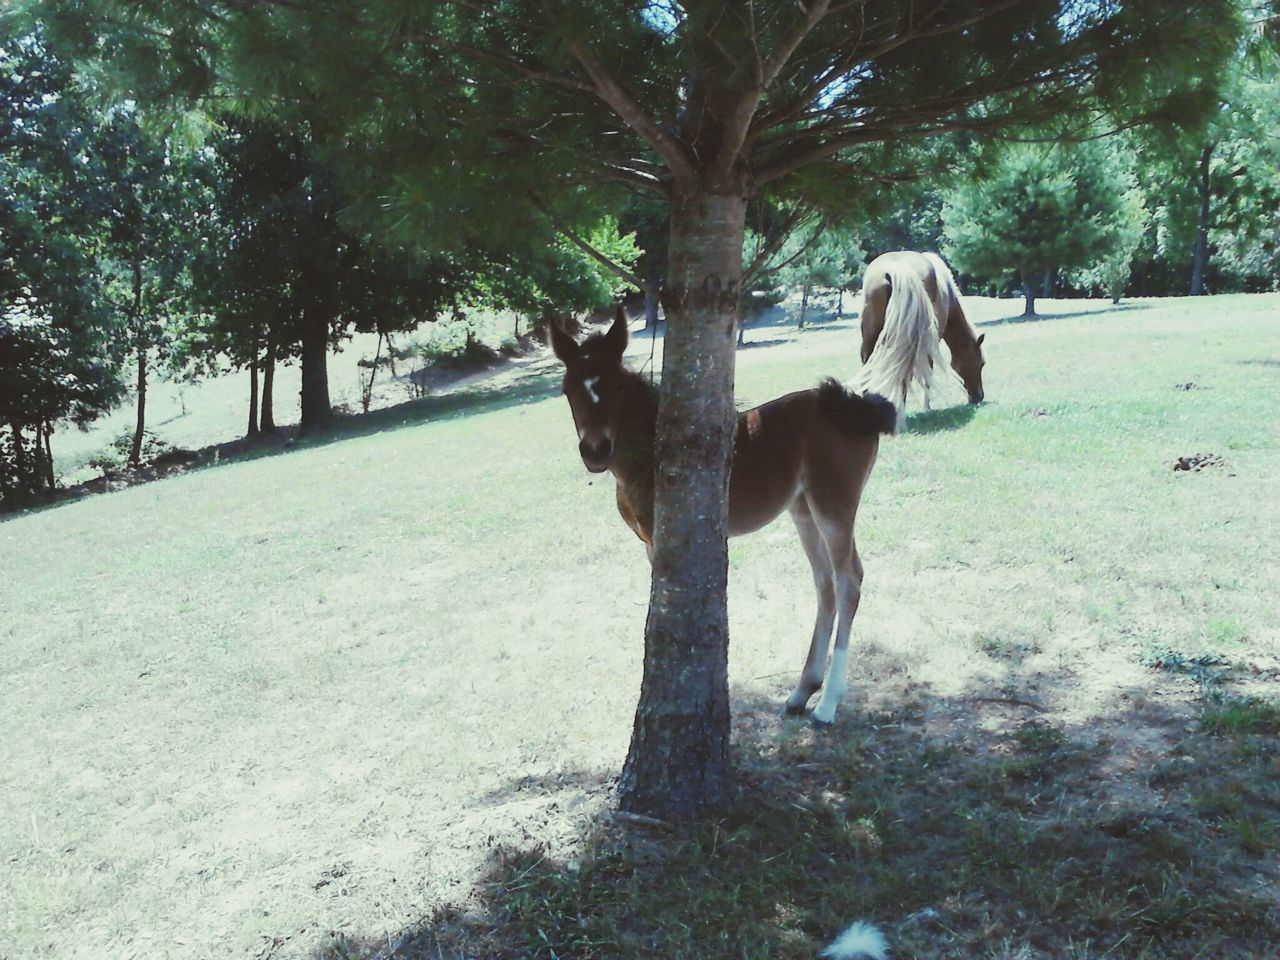 tree, mammal, horse, domestic animals, animal themes, dog, nature, no people, growth, standing, day, outdoors